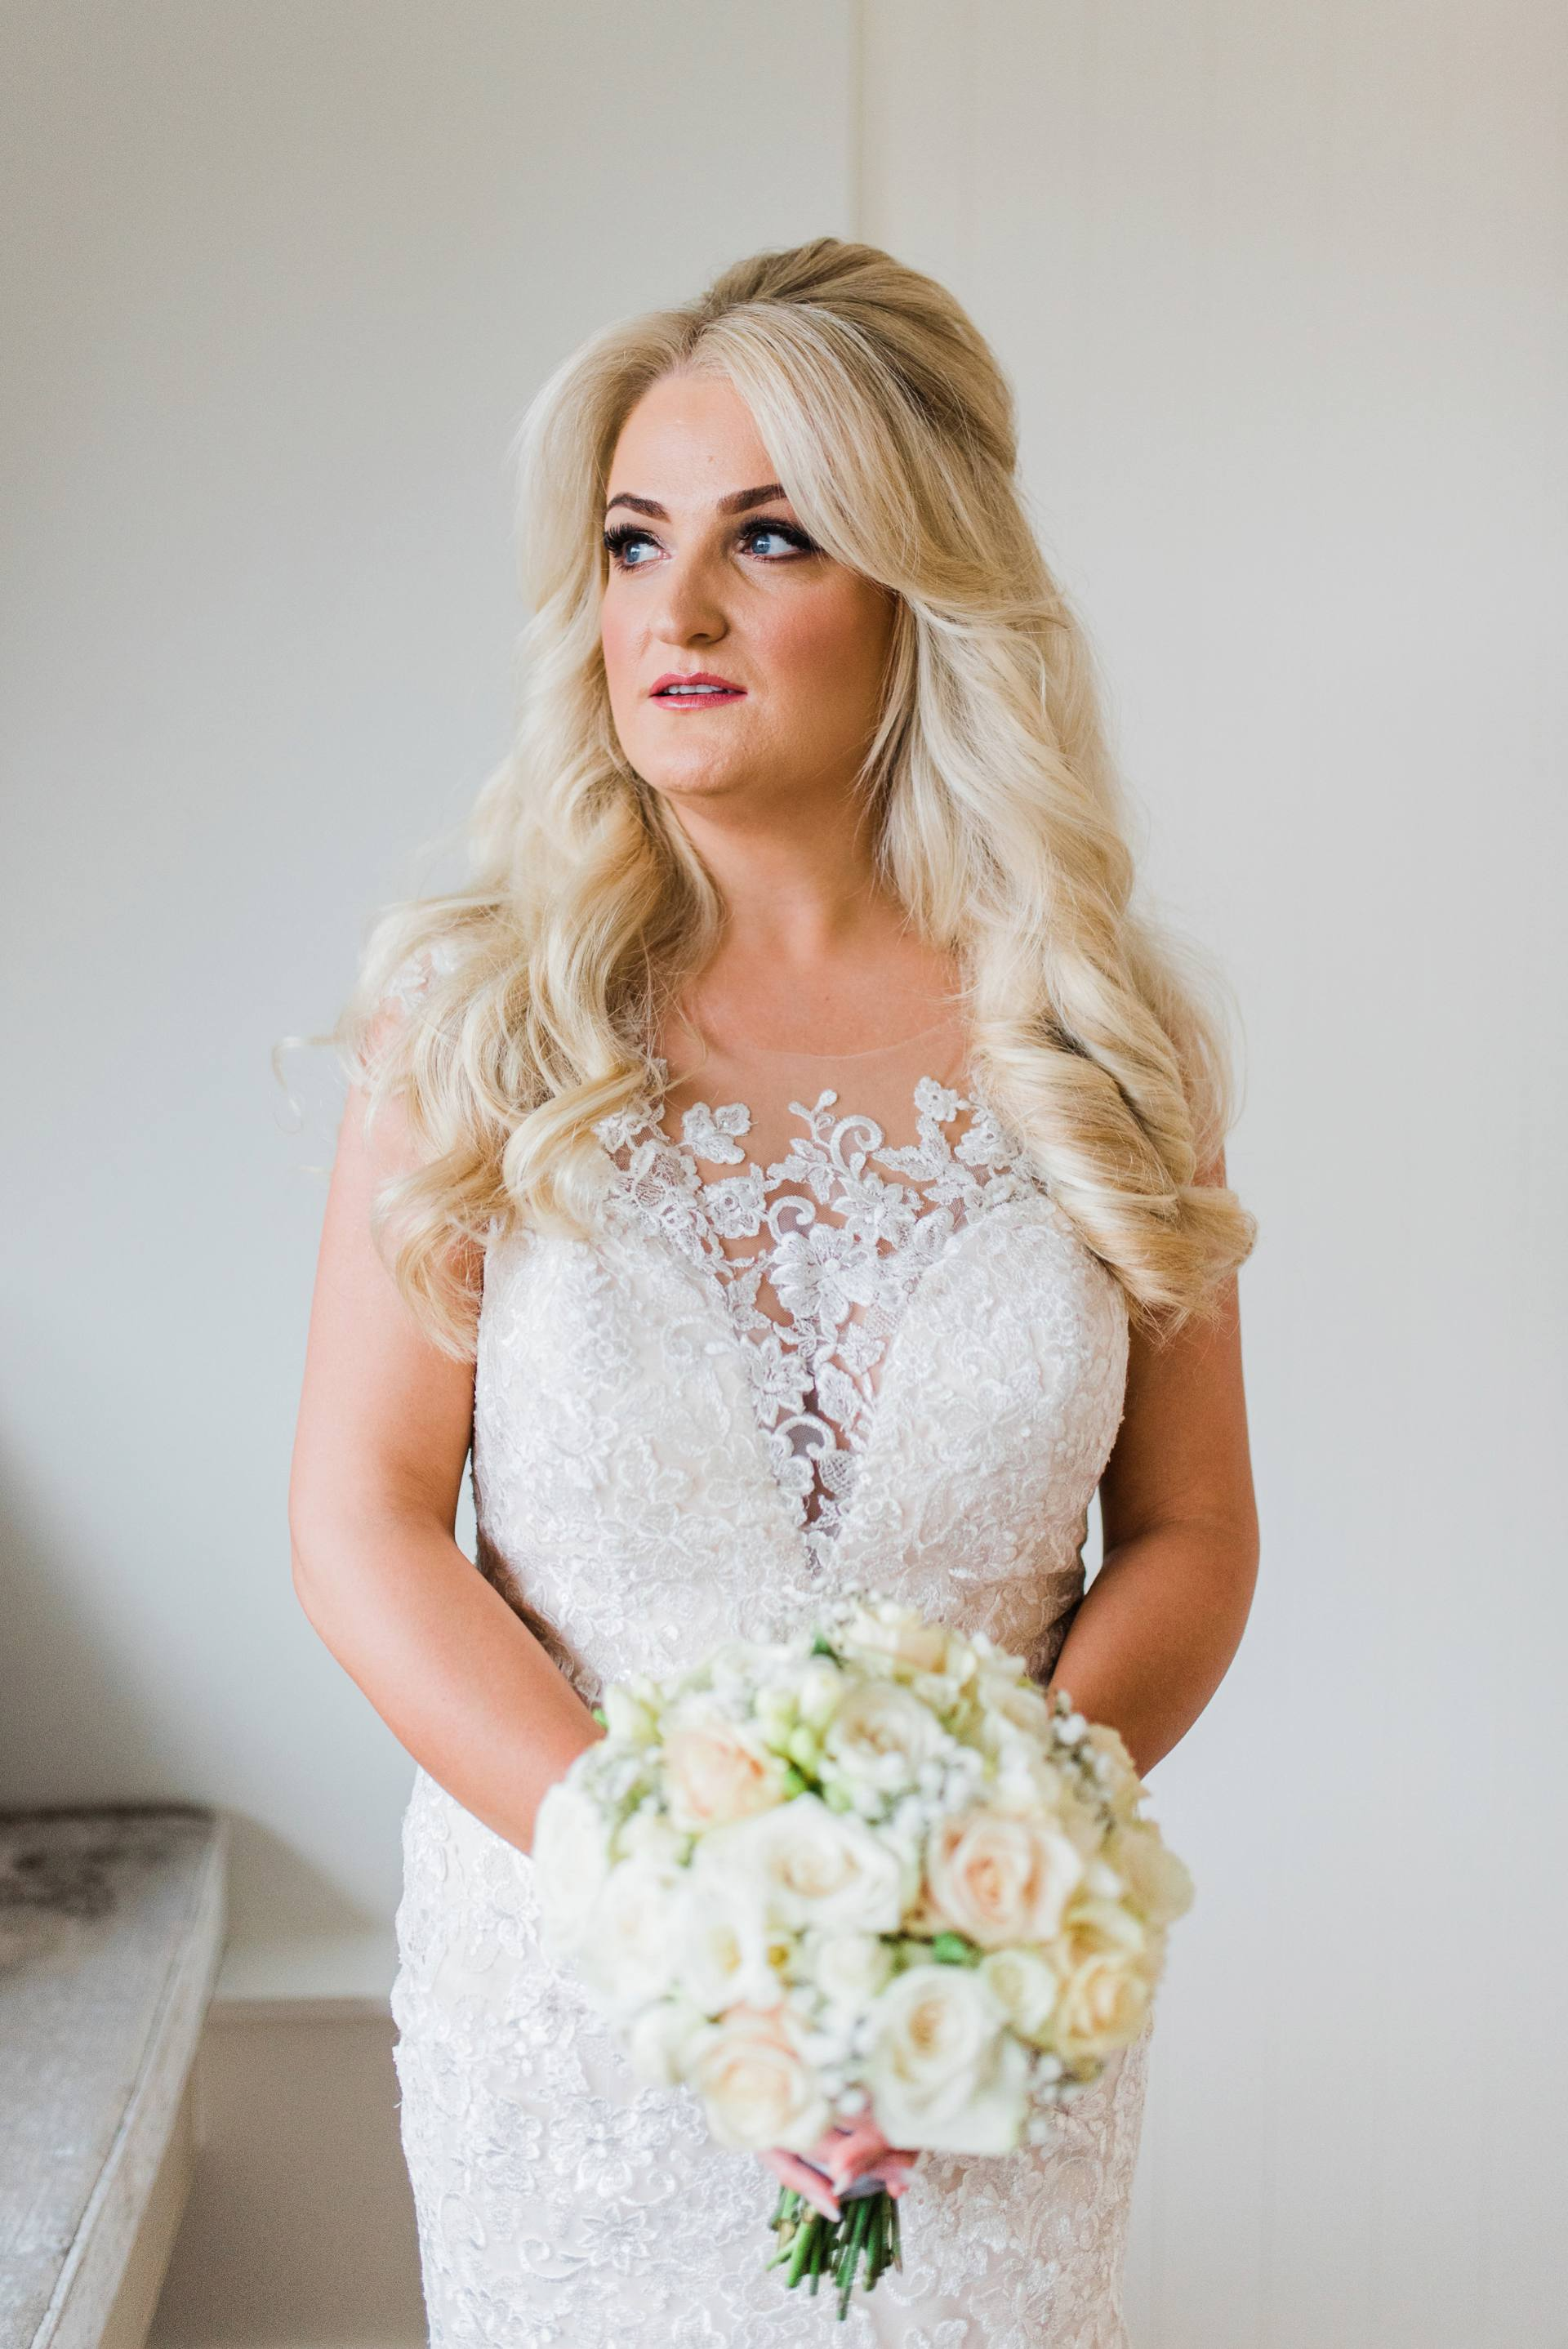 Blonde bride in lace dress holding cream roses